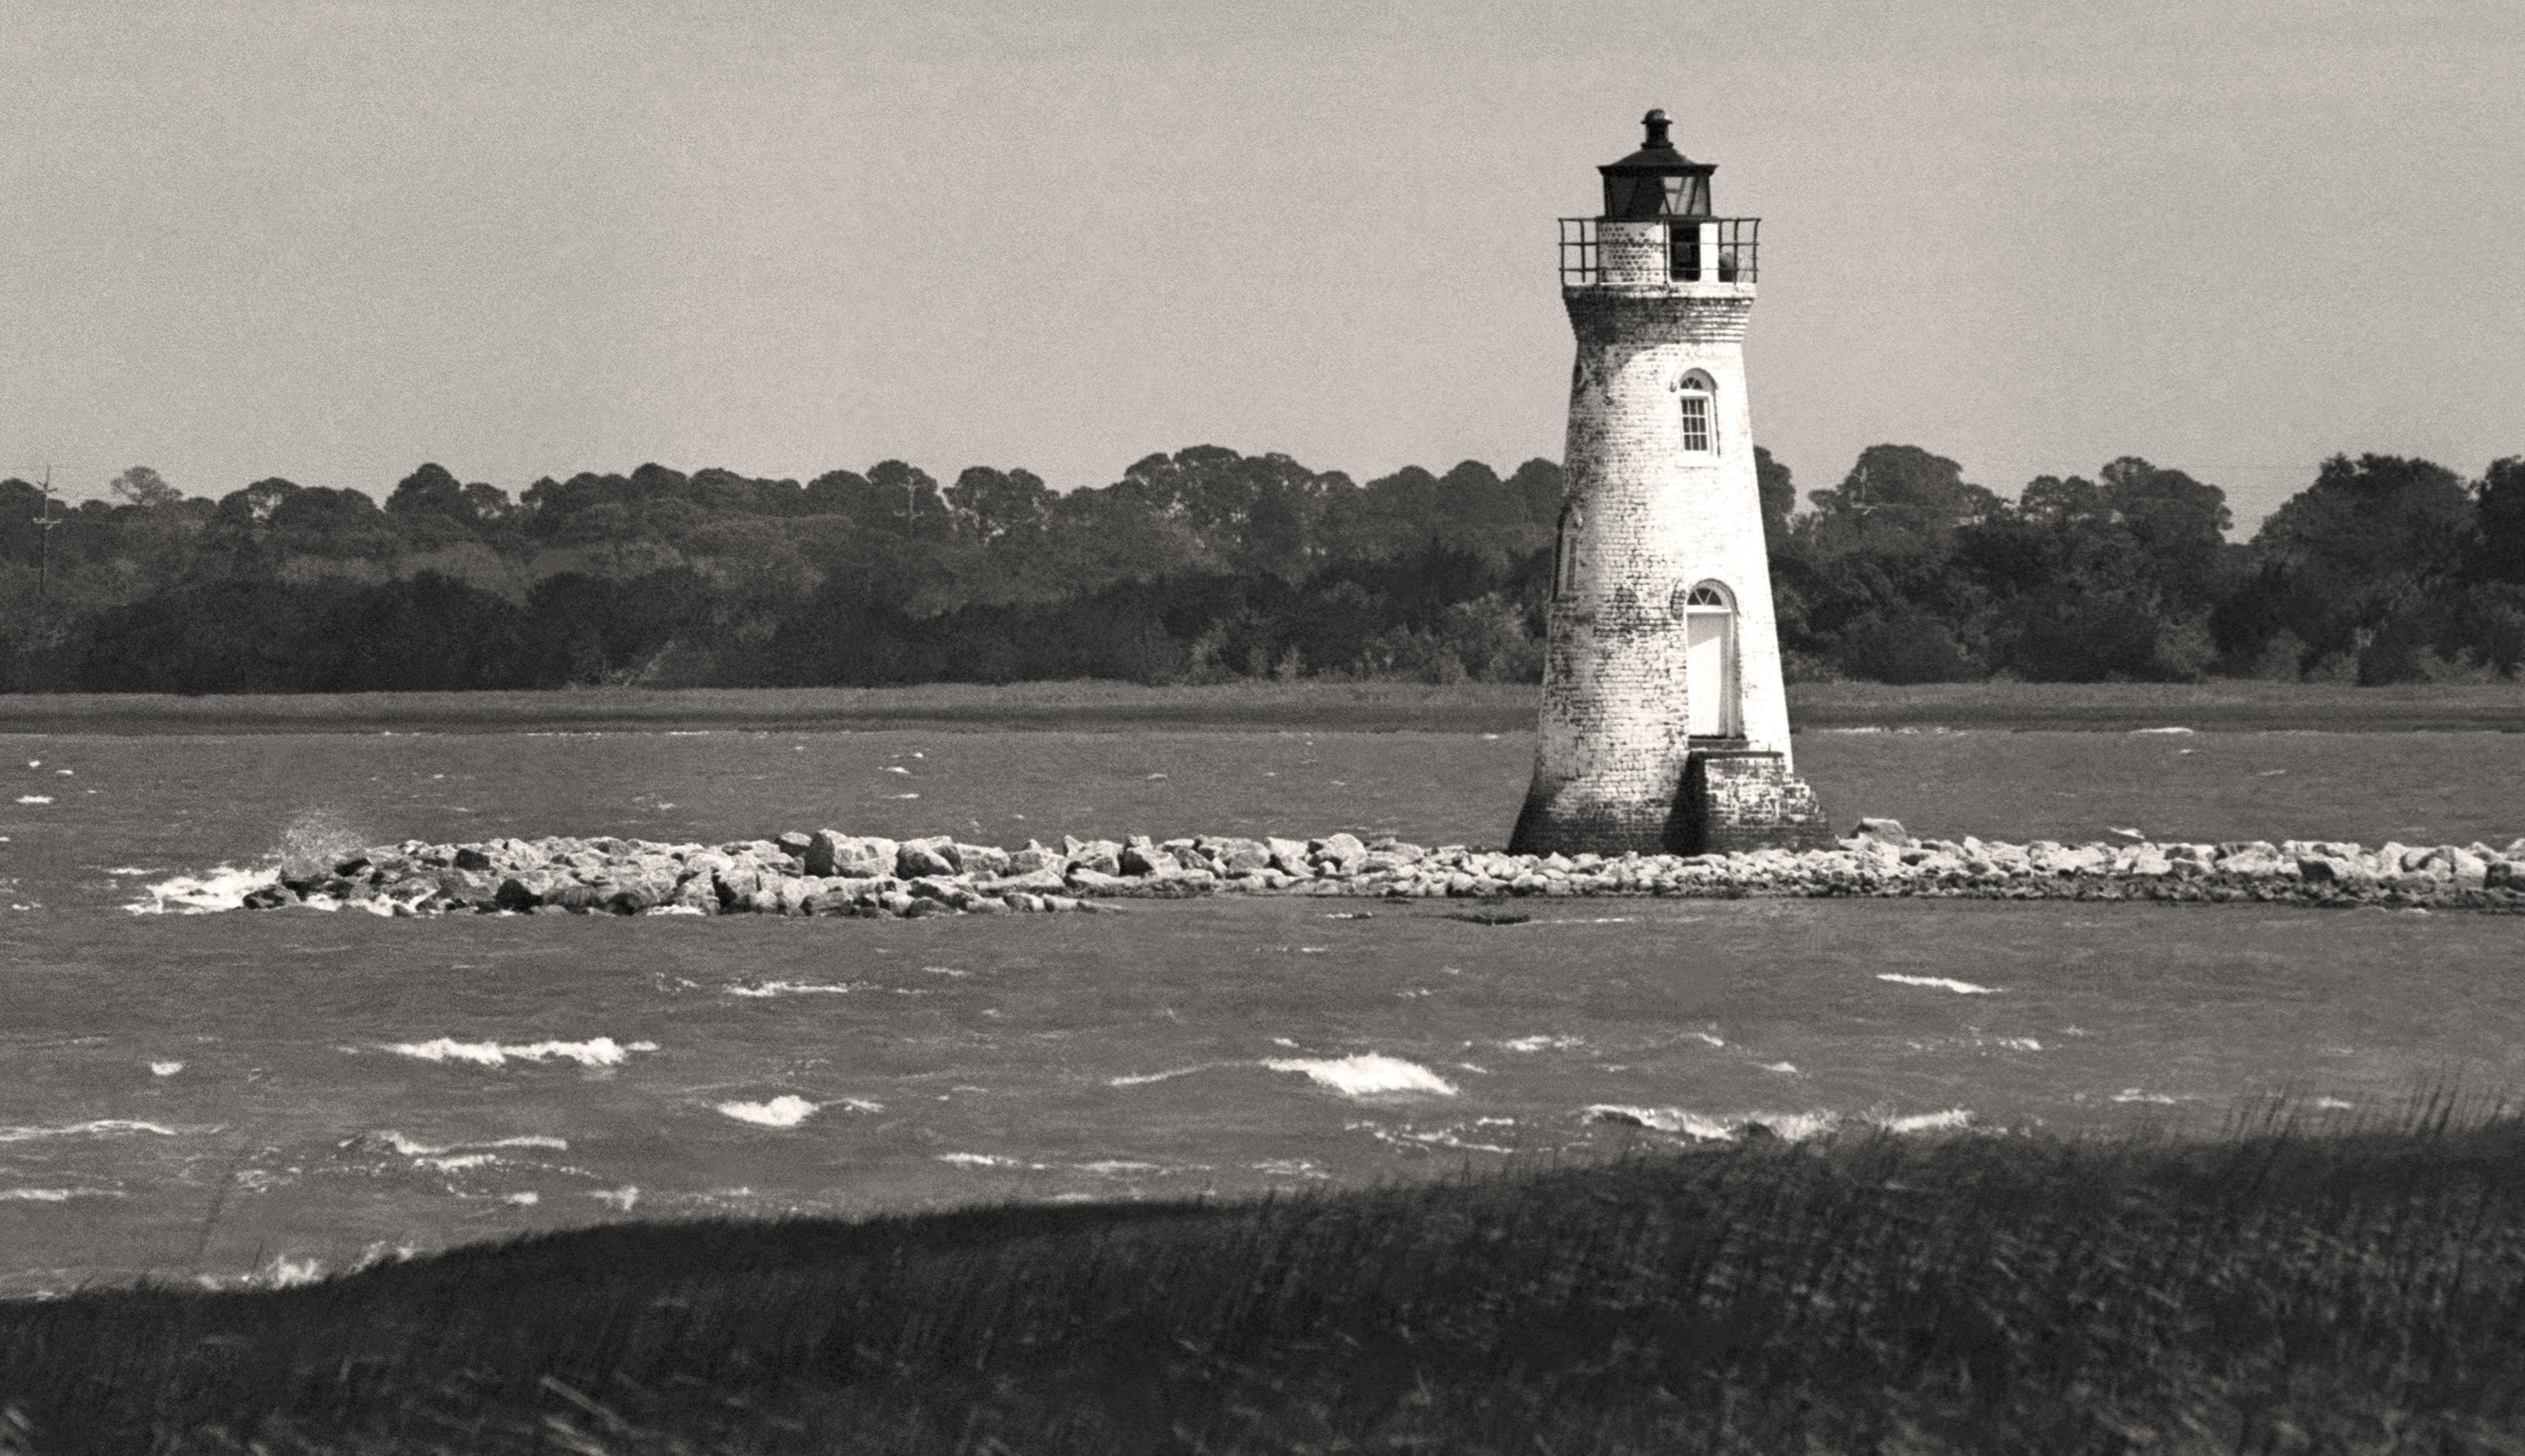 Cockspur lighthouse tybee island georgia black white photograph fine art black and white photography by the andy moine company